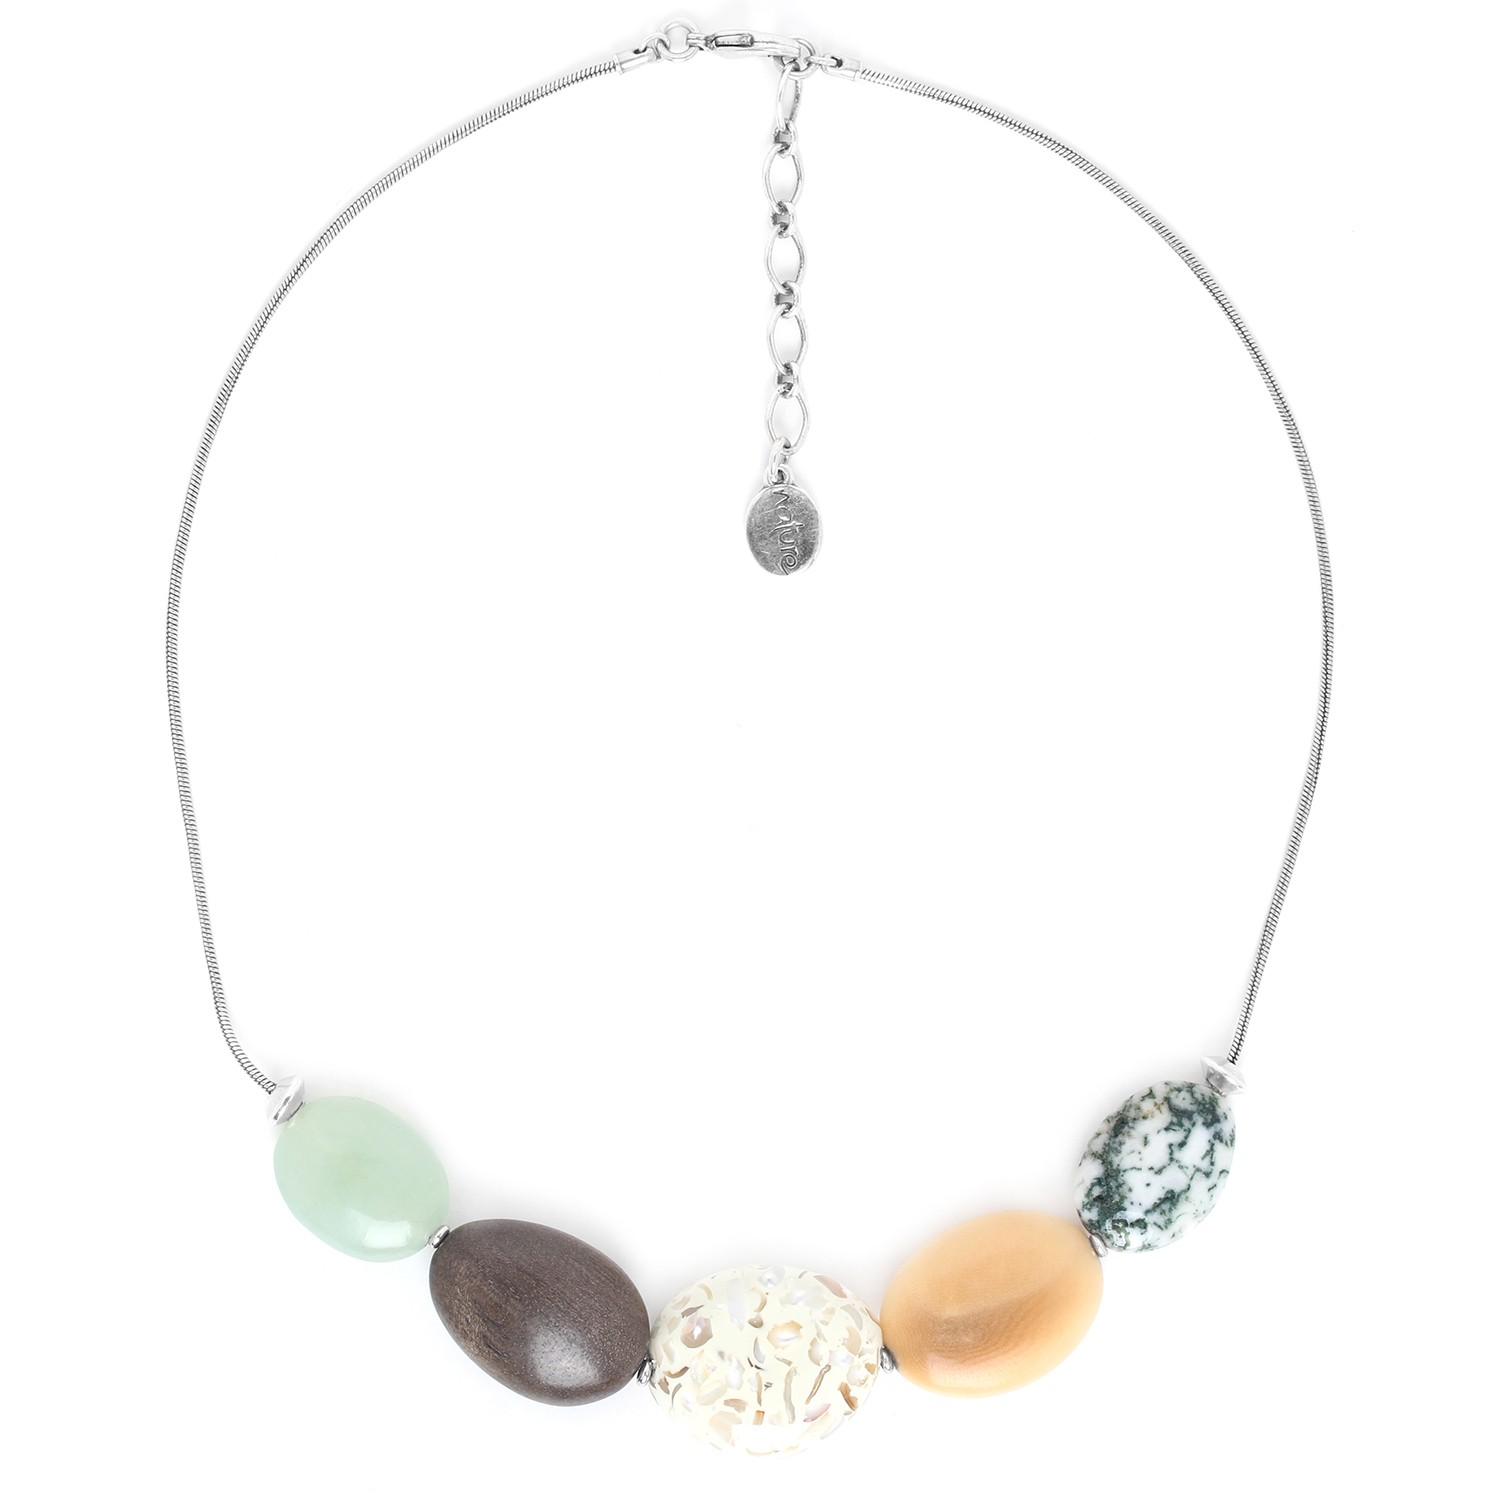 GALETS 5 pebbles necklace